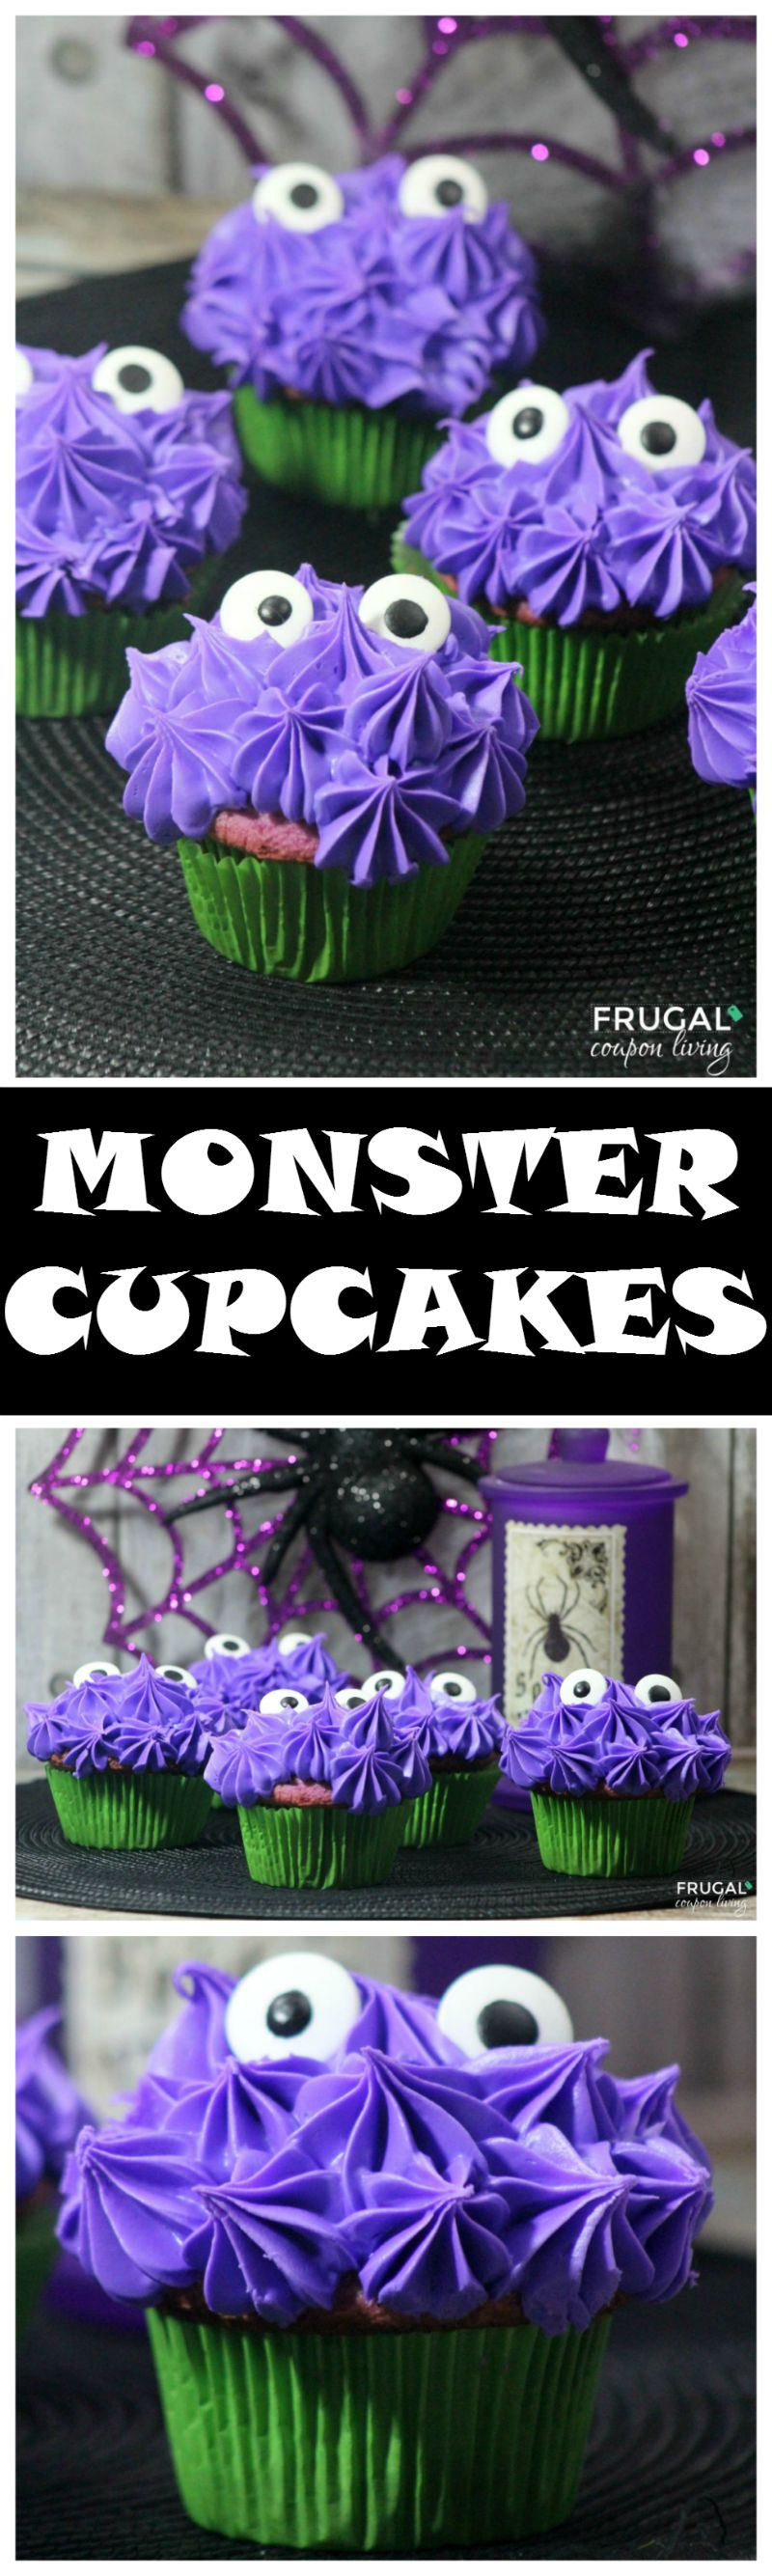 monster-cupcakes-collage-frugal-coupon-living